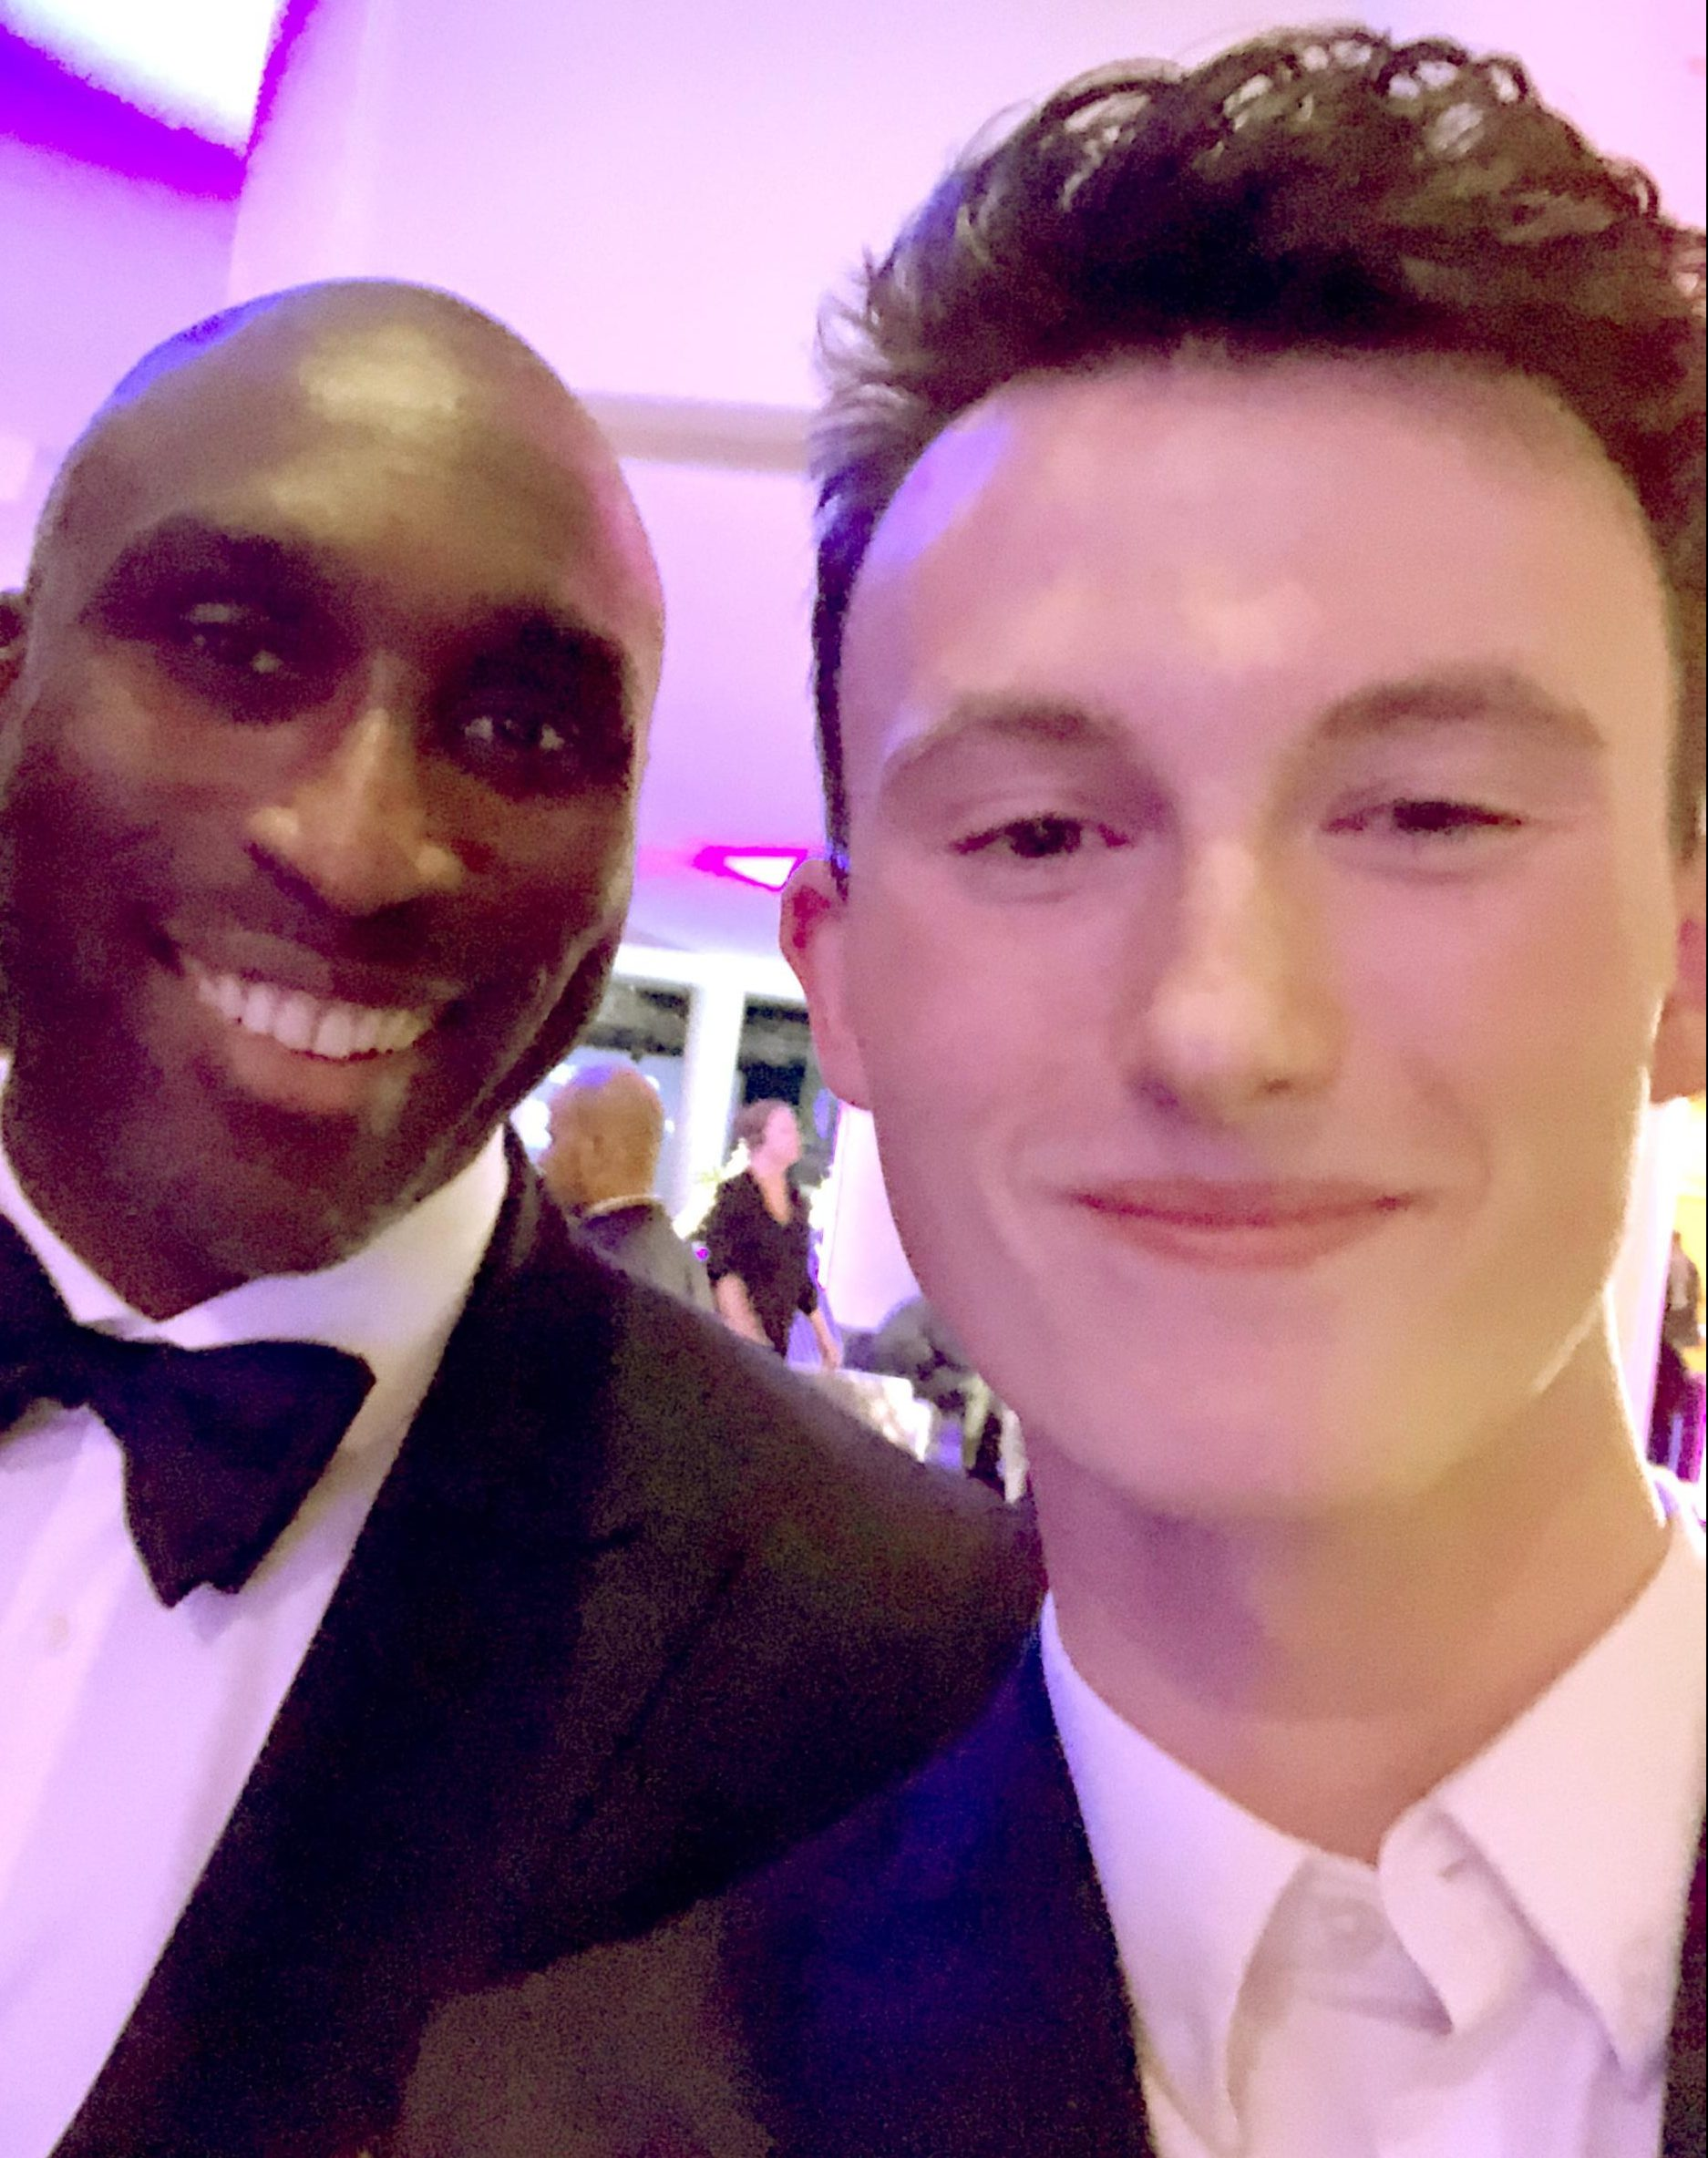 Sol Campbell, left, was also present for the chat on the dinner table